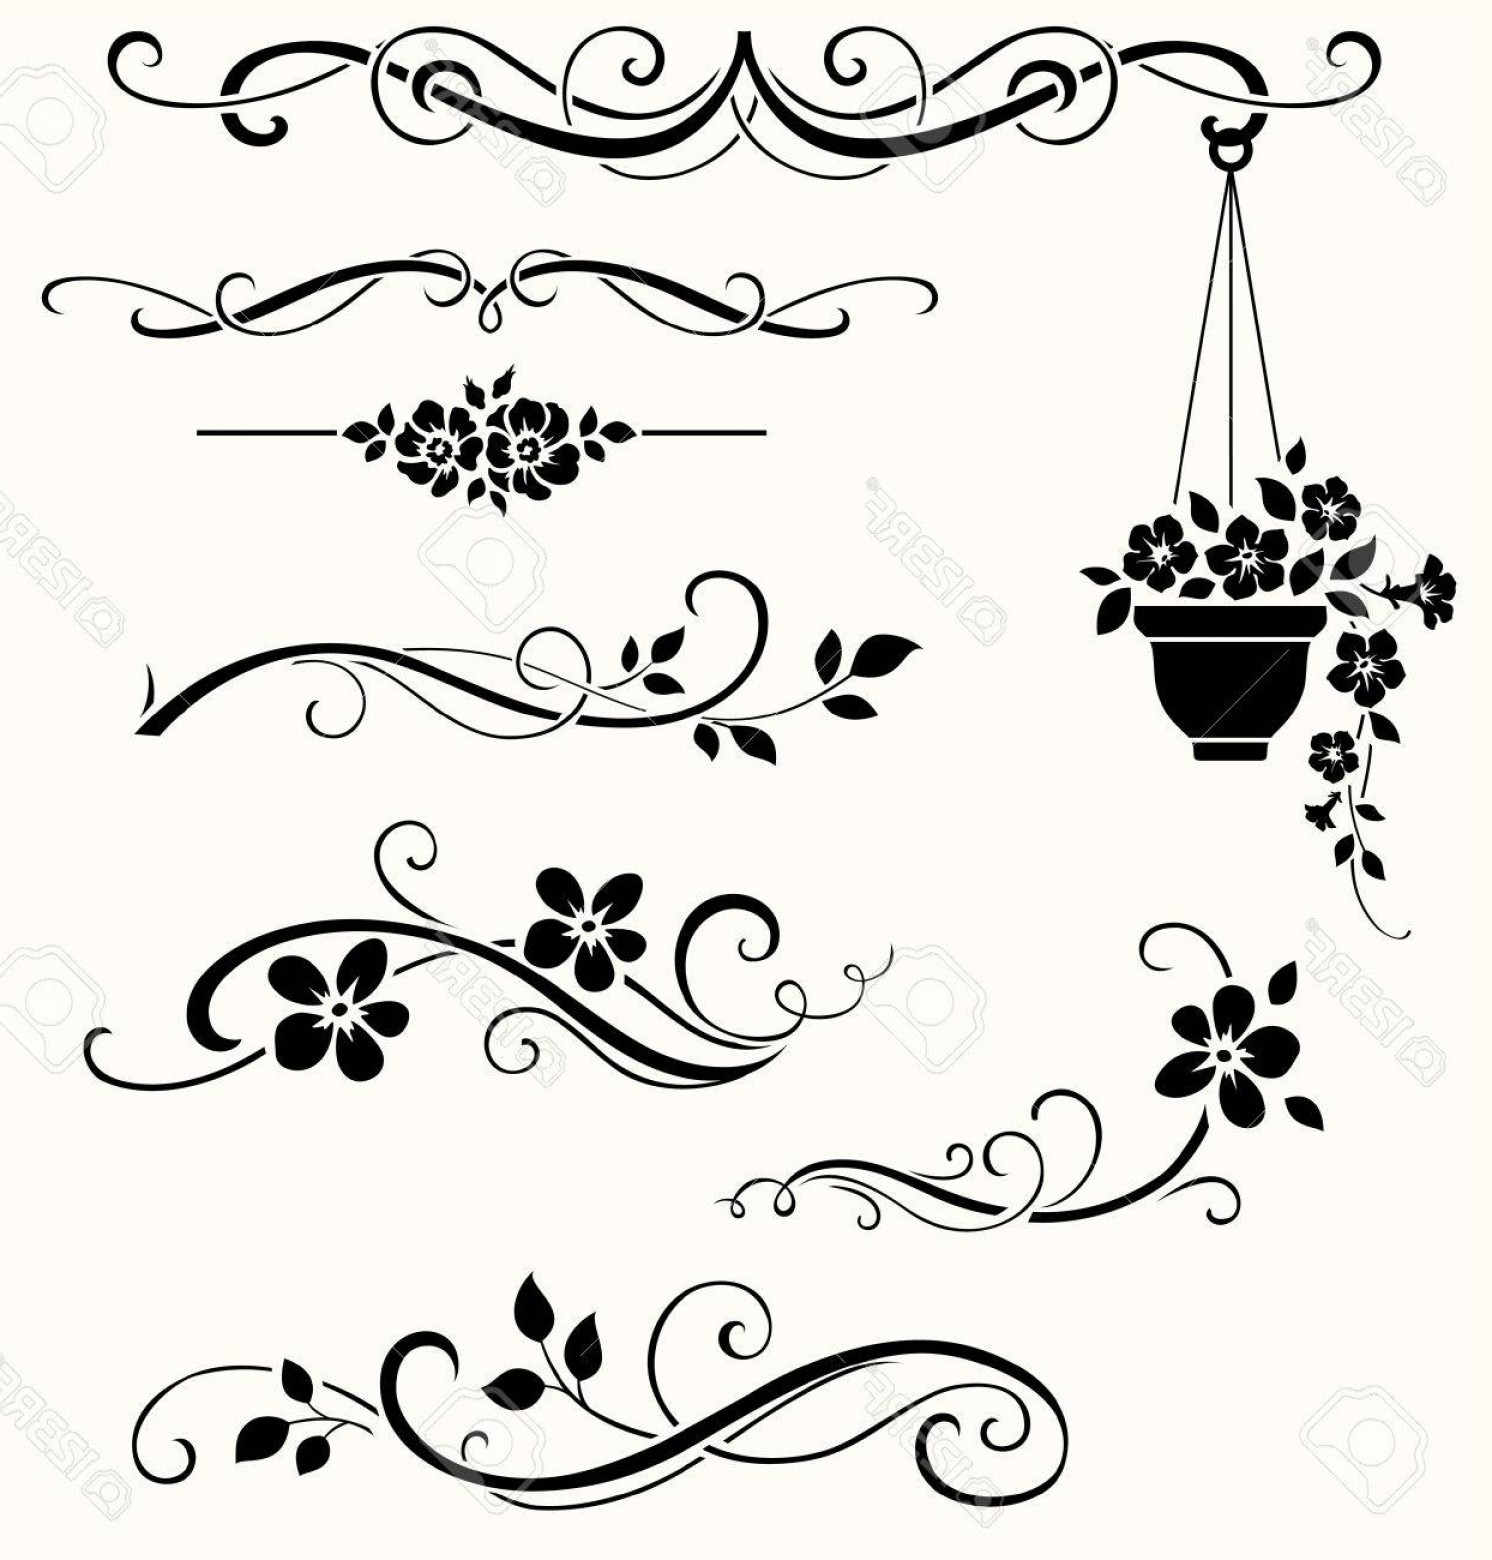 Flower Elements Vector: Photostock Vector Set Of Calligraphic Floral Elements Vector Decorative Twigs And Flowers